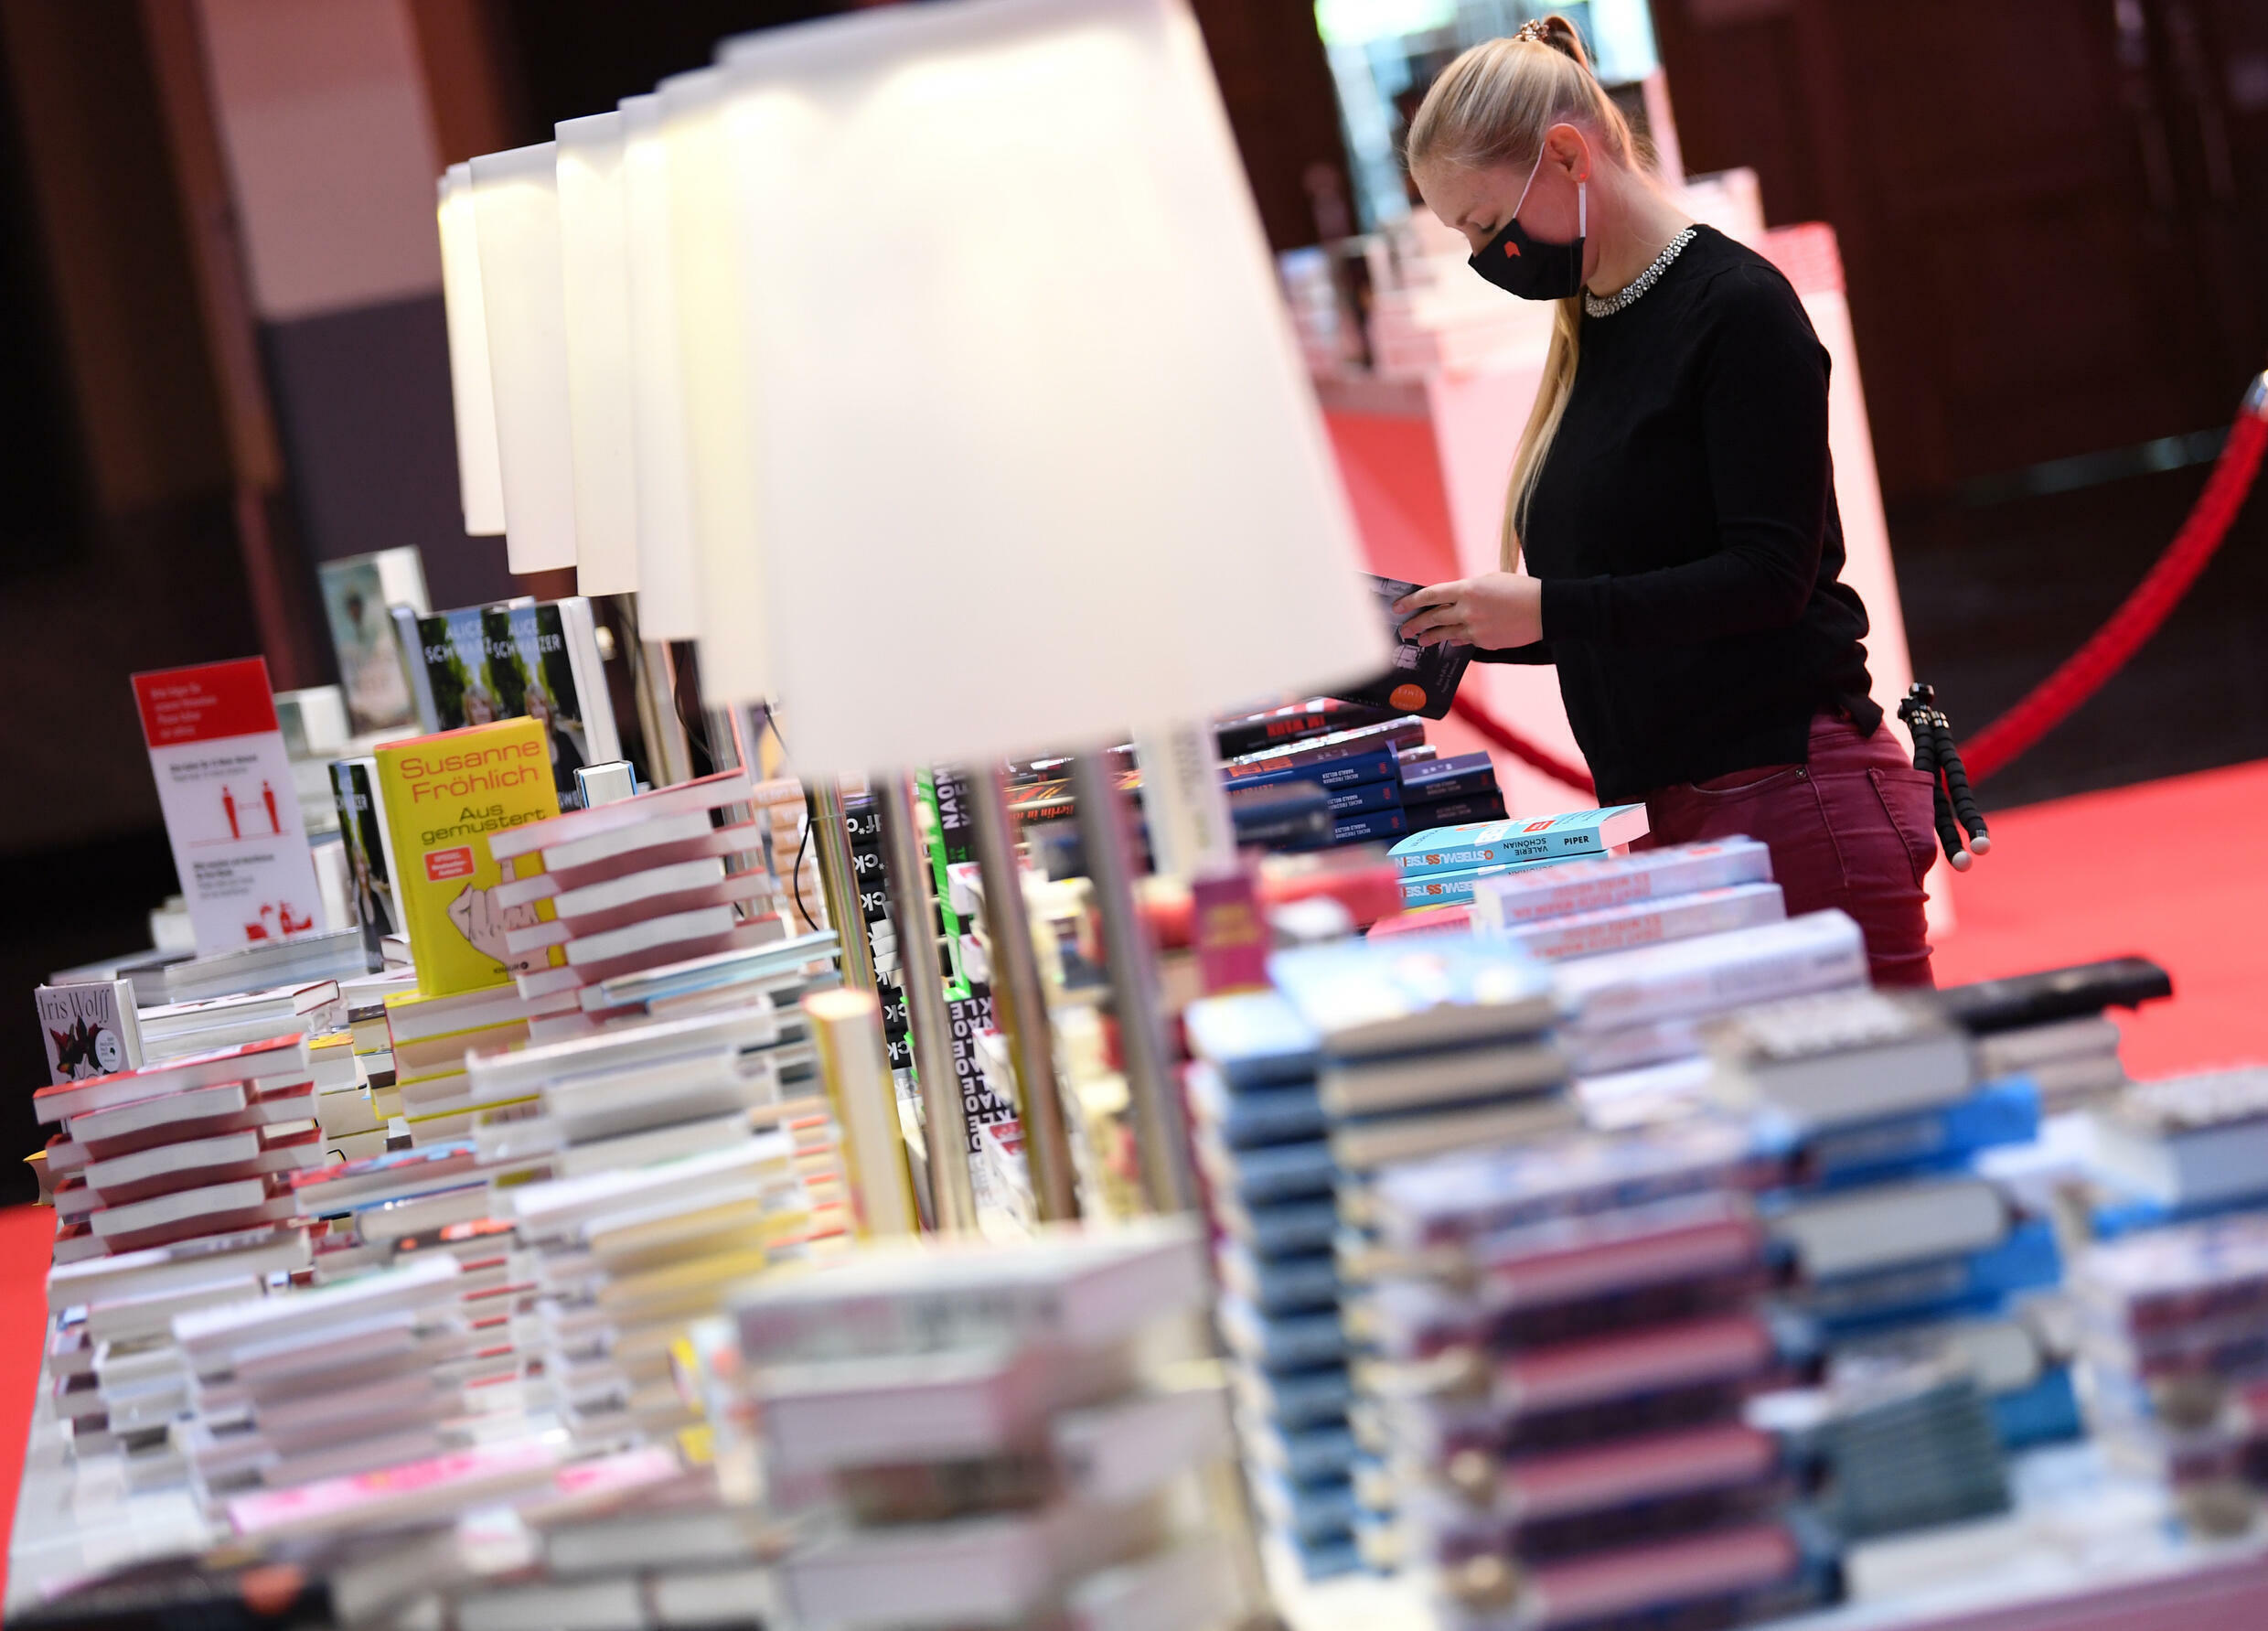 The Frankfurt book fair, the world's largest, returns this week as an in-person event after going almost fully digital last year to curb the coronavirus spread